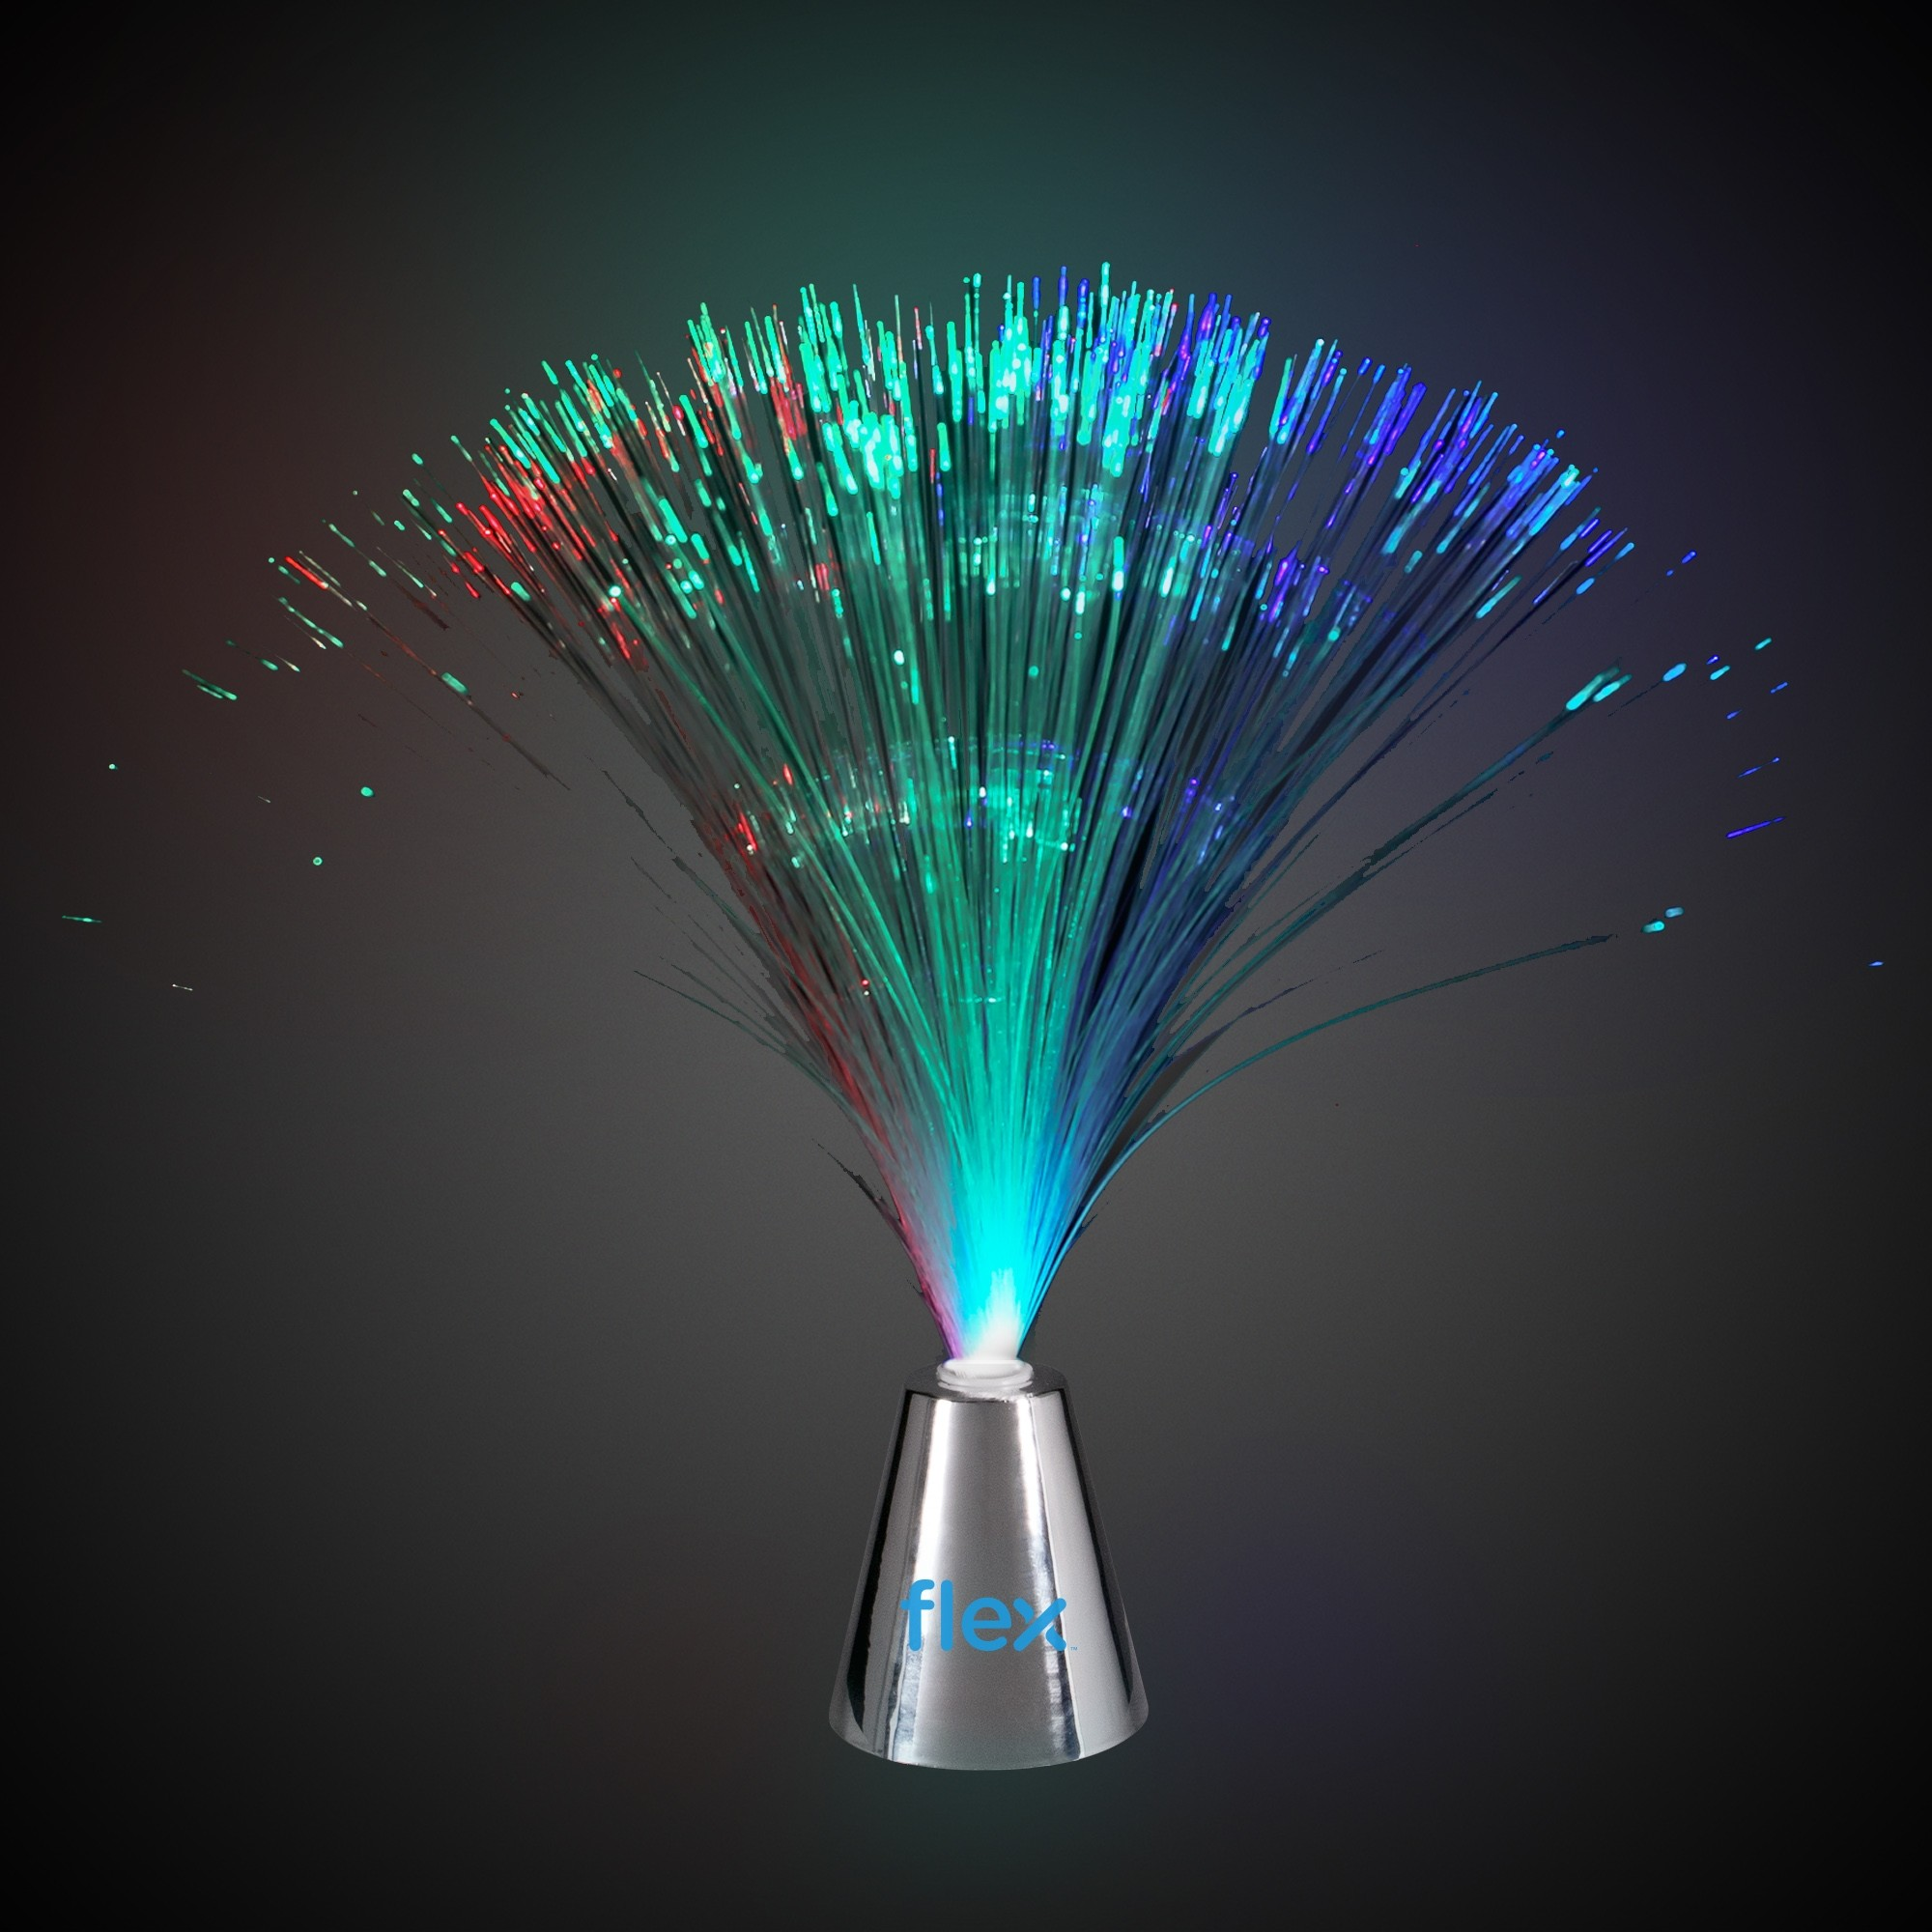 13.5 INCH LED FIBER OPTIC CENTERPIECE